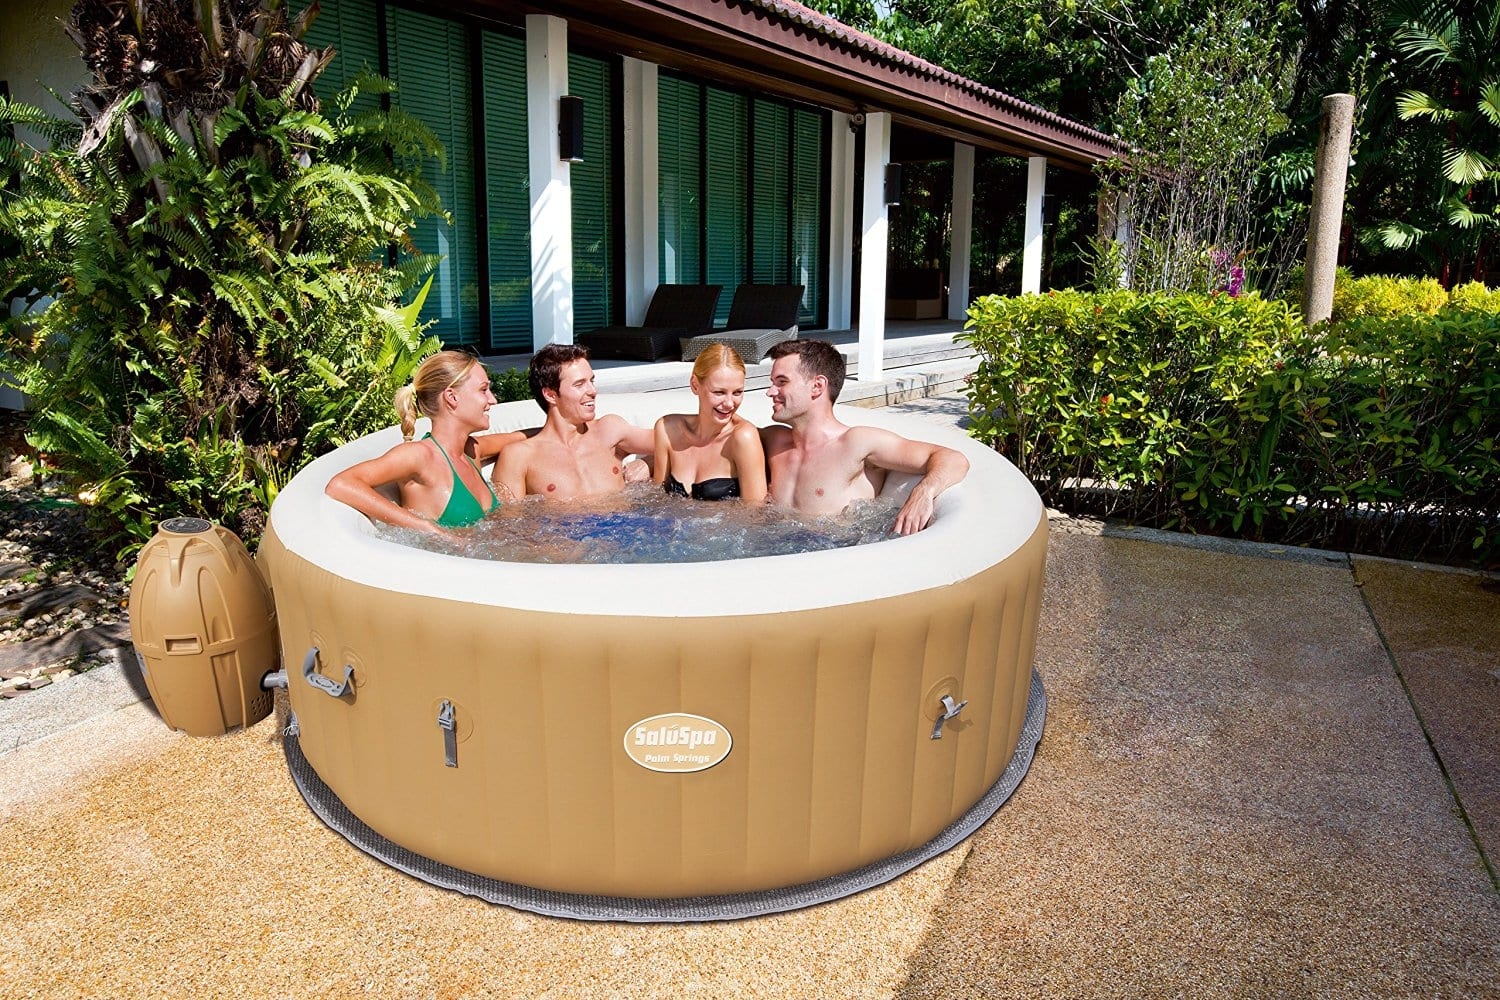 """Inflatable Hot Tub - """"6 person"""" Lowest price of 2016 - Amazon $356.73+tax SaluSpa / Bestway / Intex Palm Springs"""